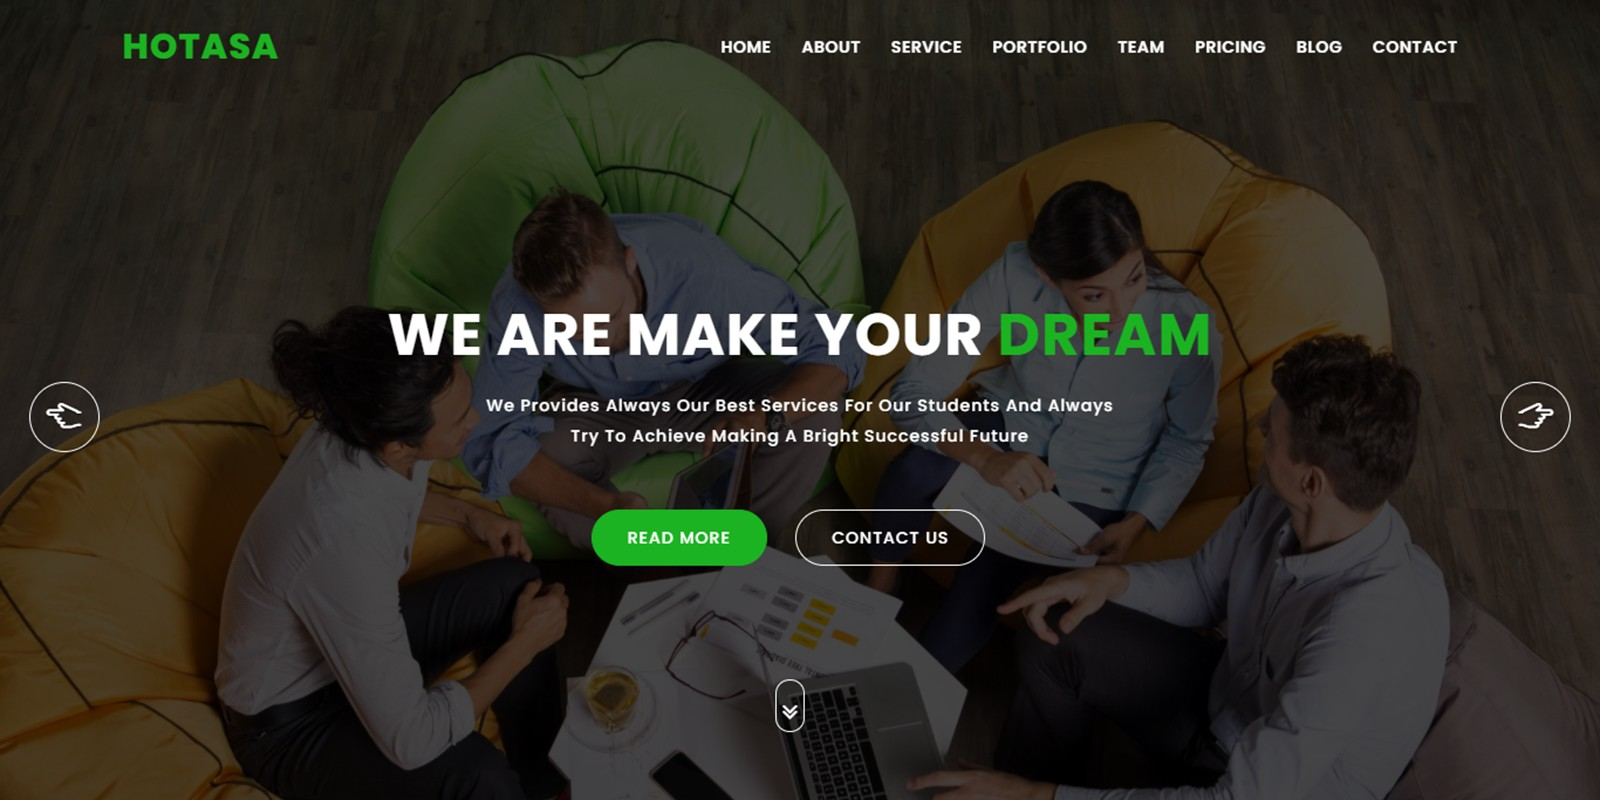 Hotasa Consulting And Business HTML5 Template